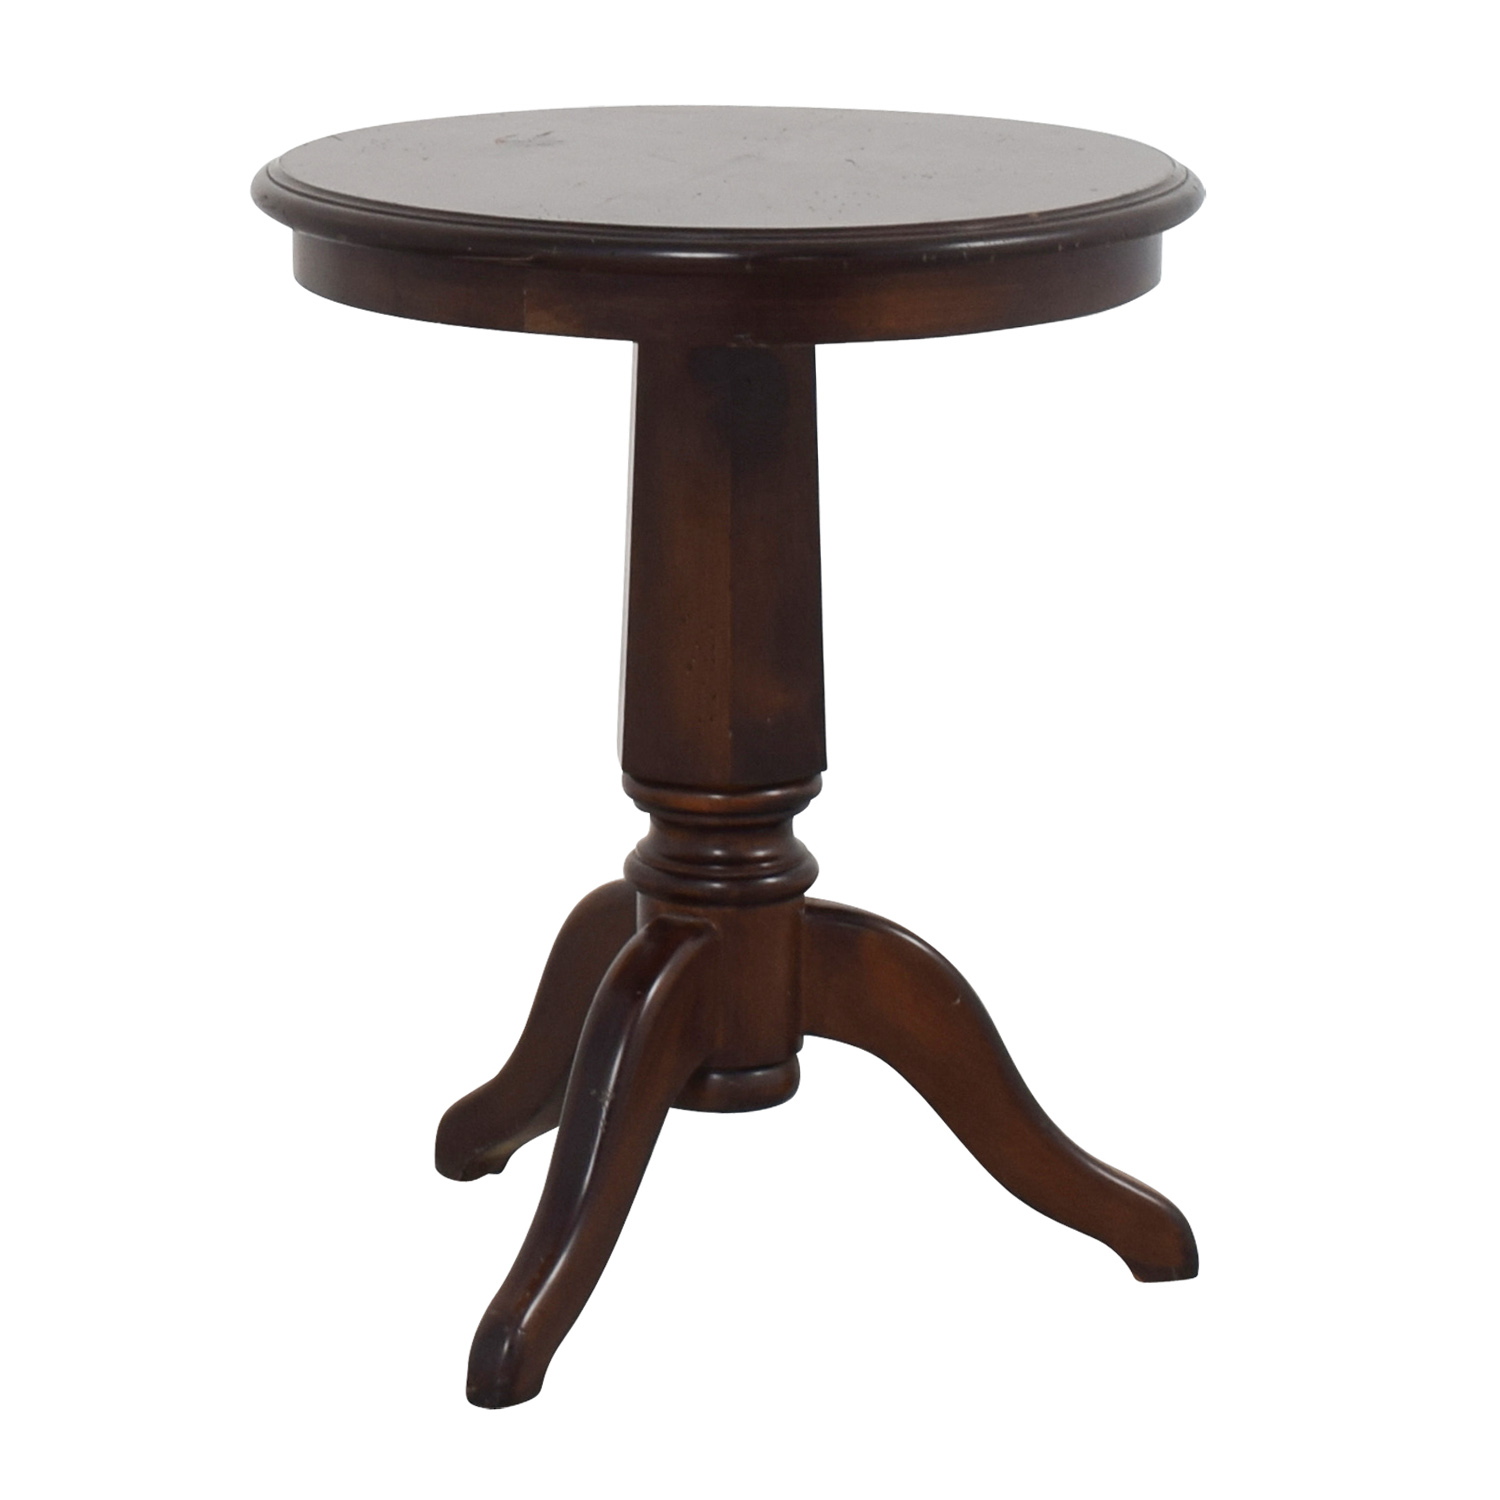 90 off furniture masters round wooden end table tables for Buy round table